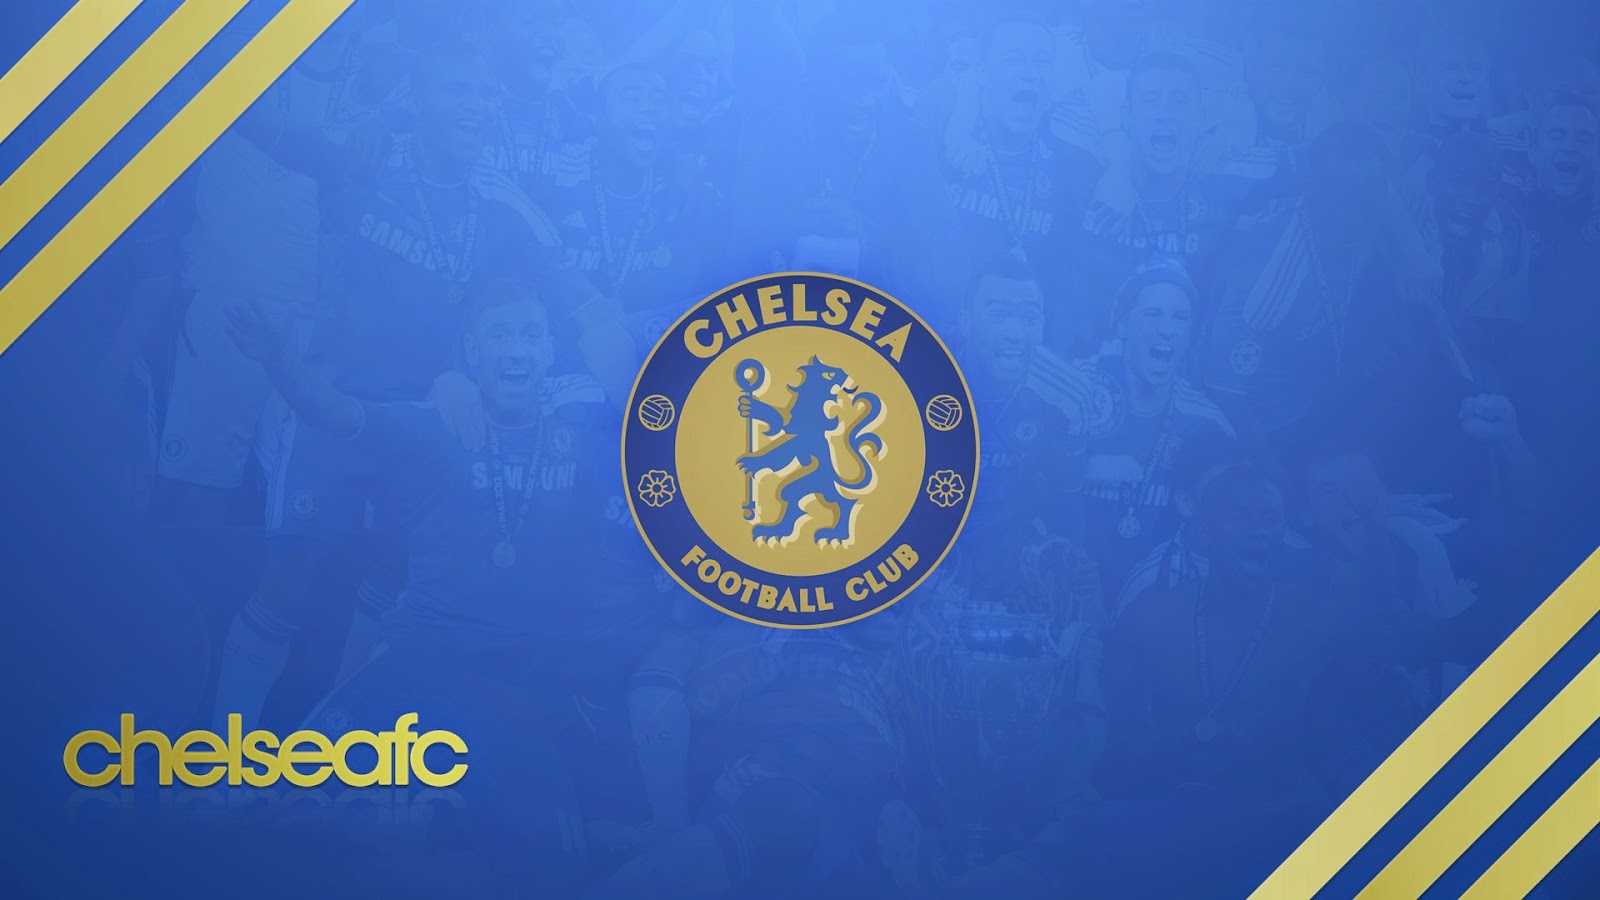 Chelsea FC Wallpapers & New Free HD Background